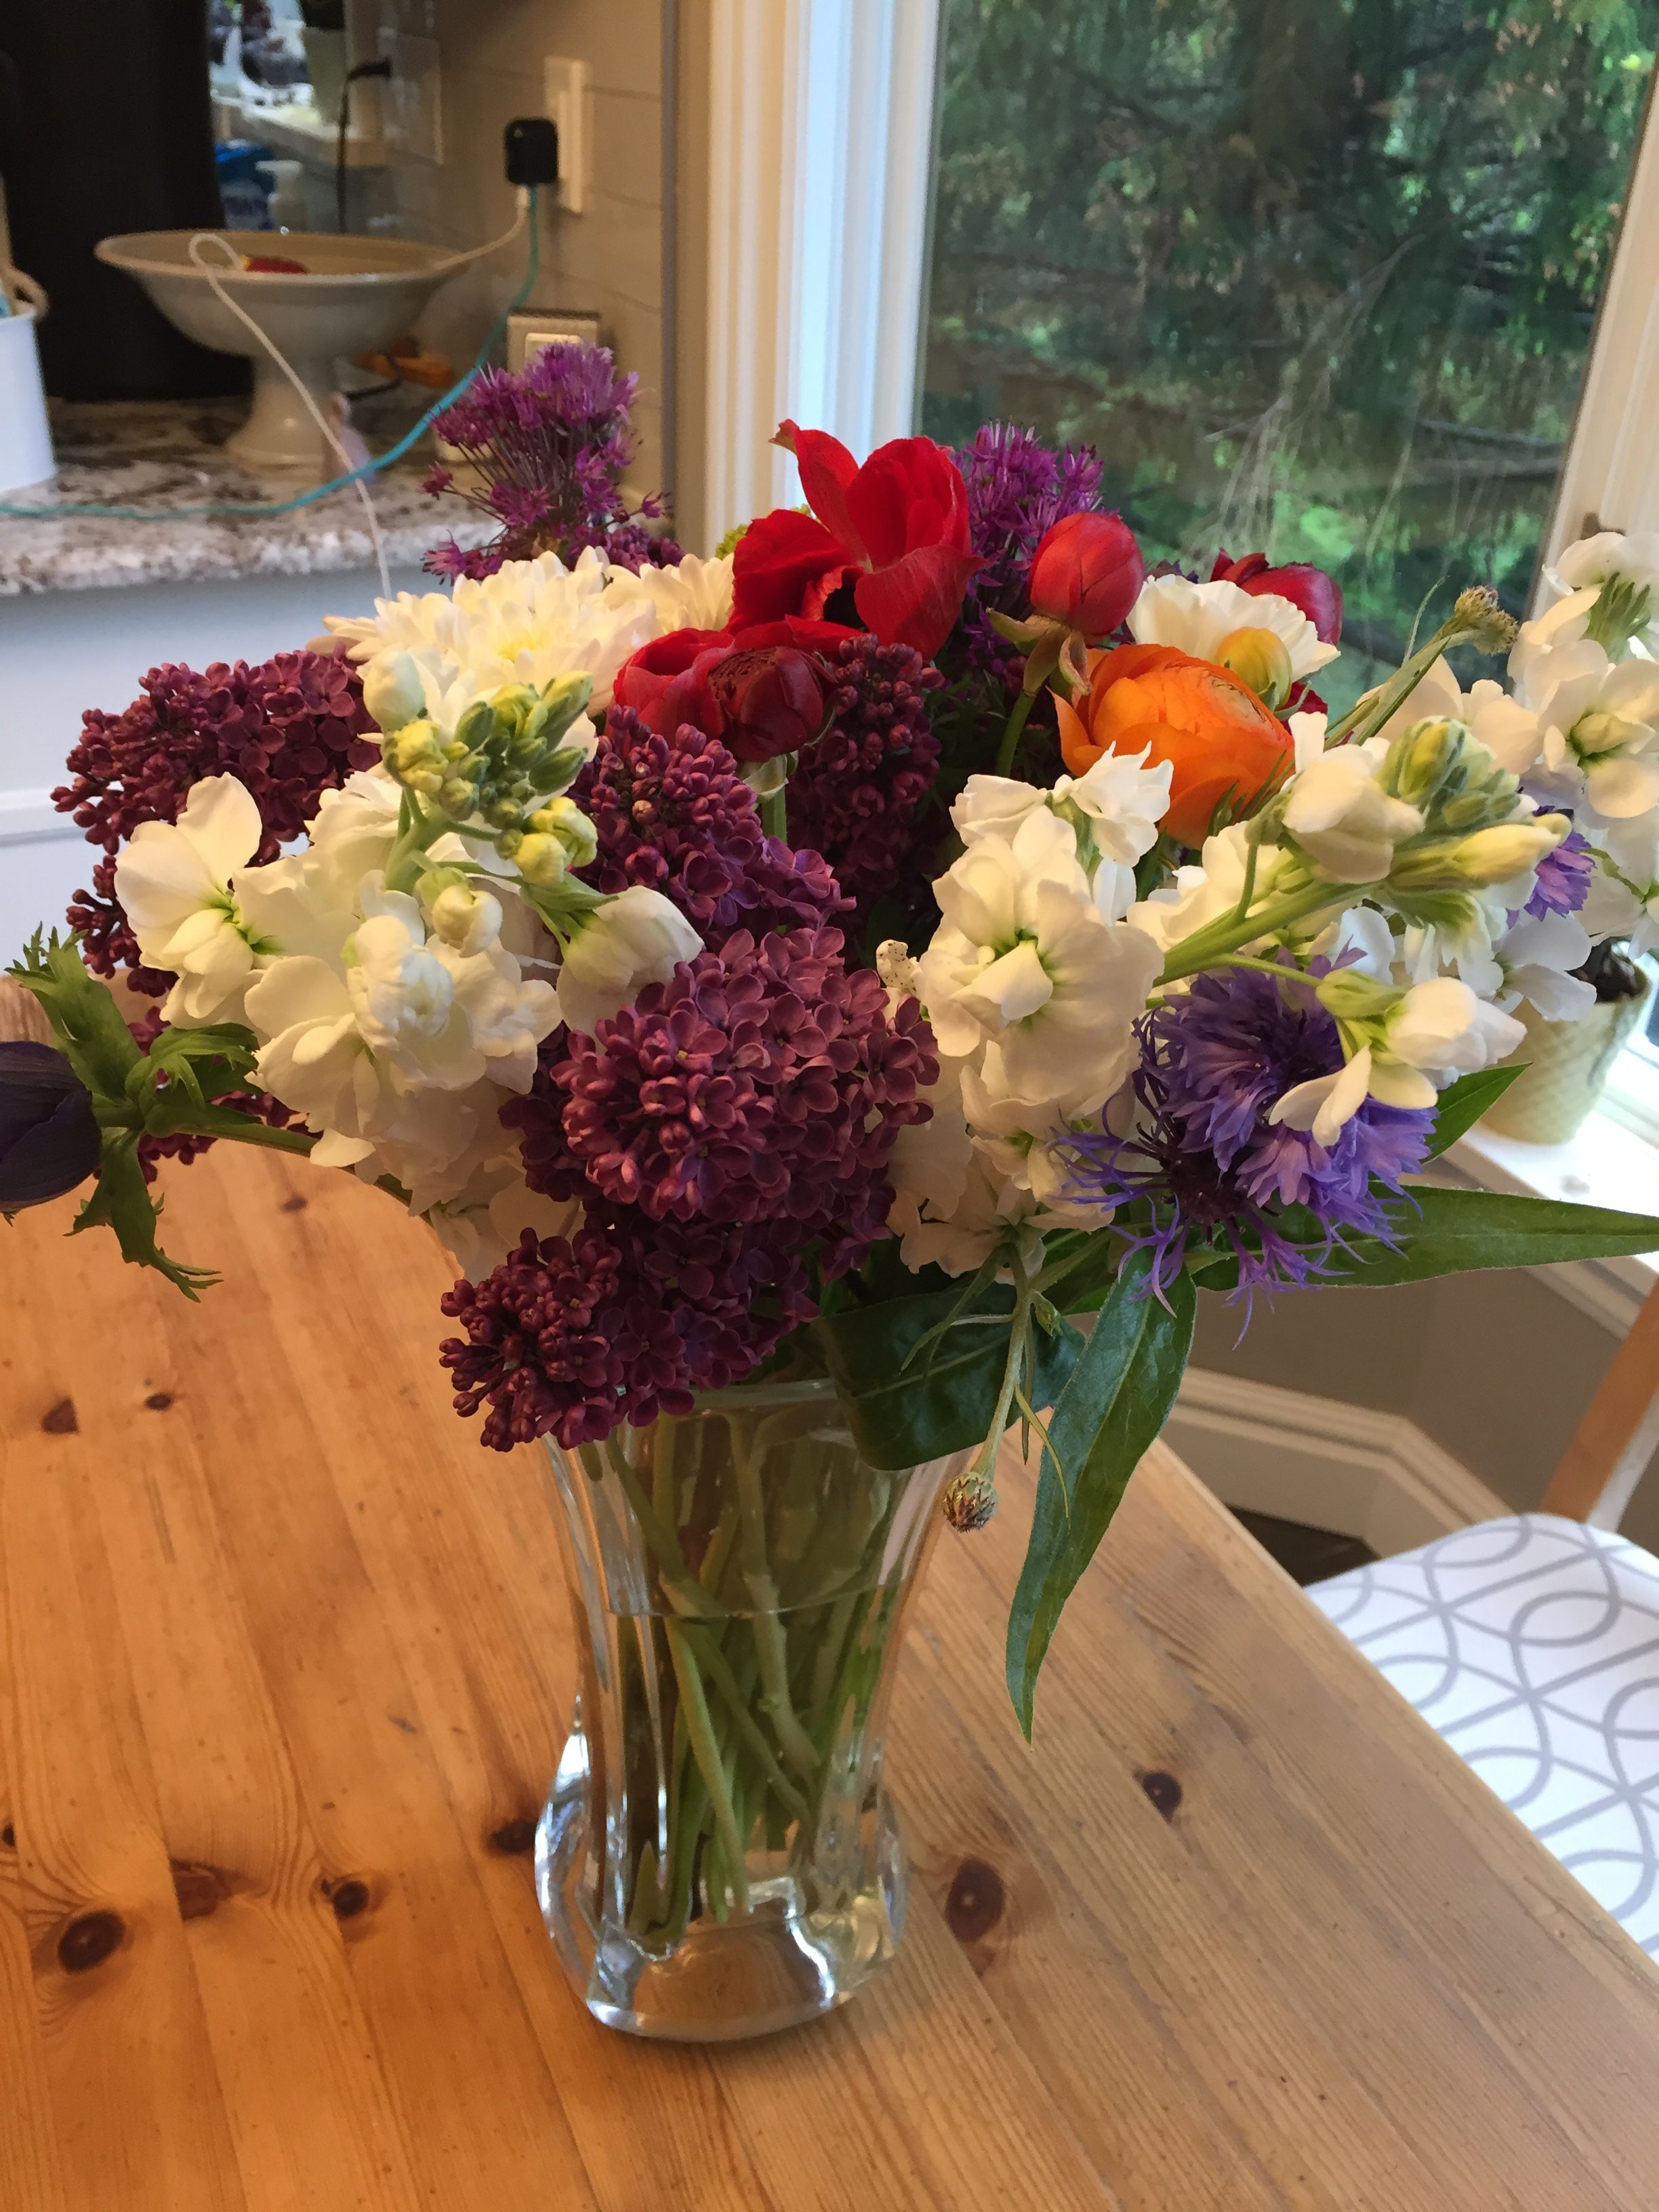 Pin by Lisa Baxter on Flower subscription Flower